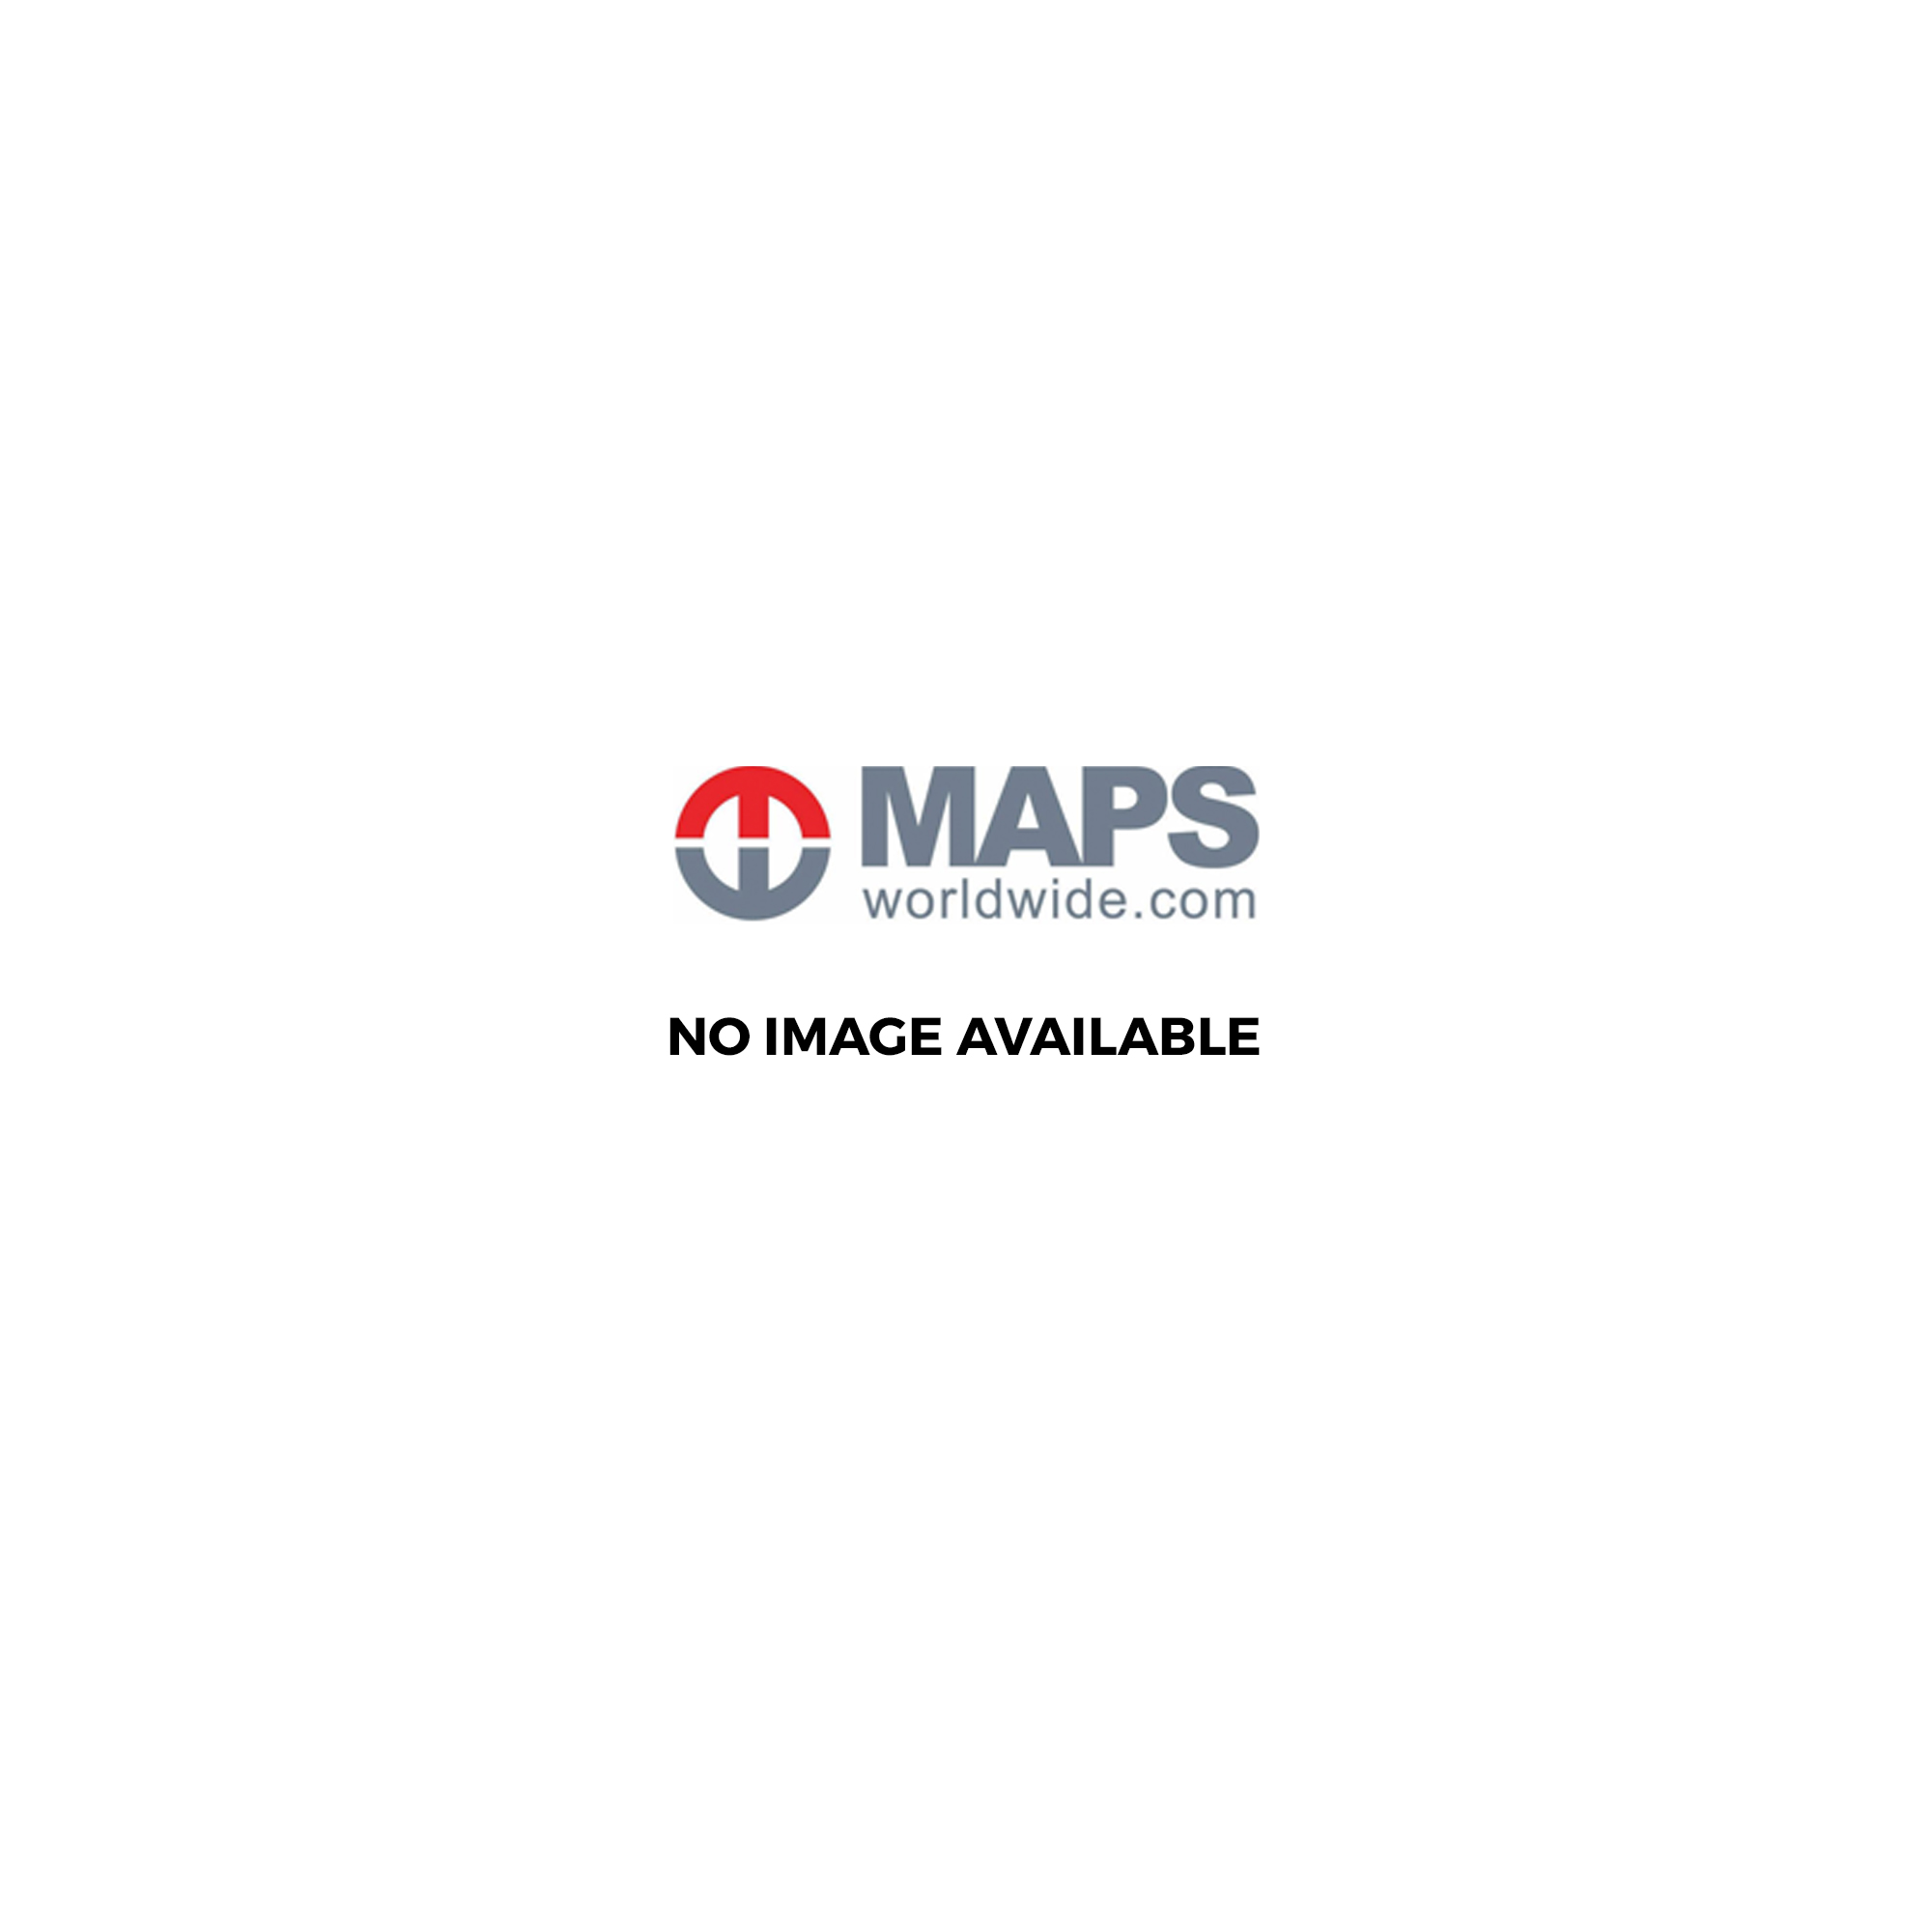 Ubd Gregory S Maps Travel Guides Atlases Of Australia Maps